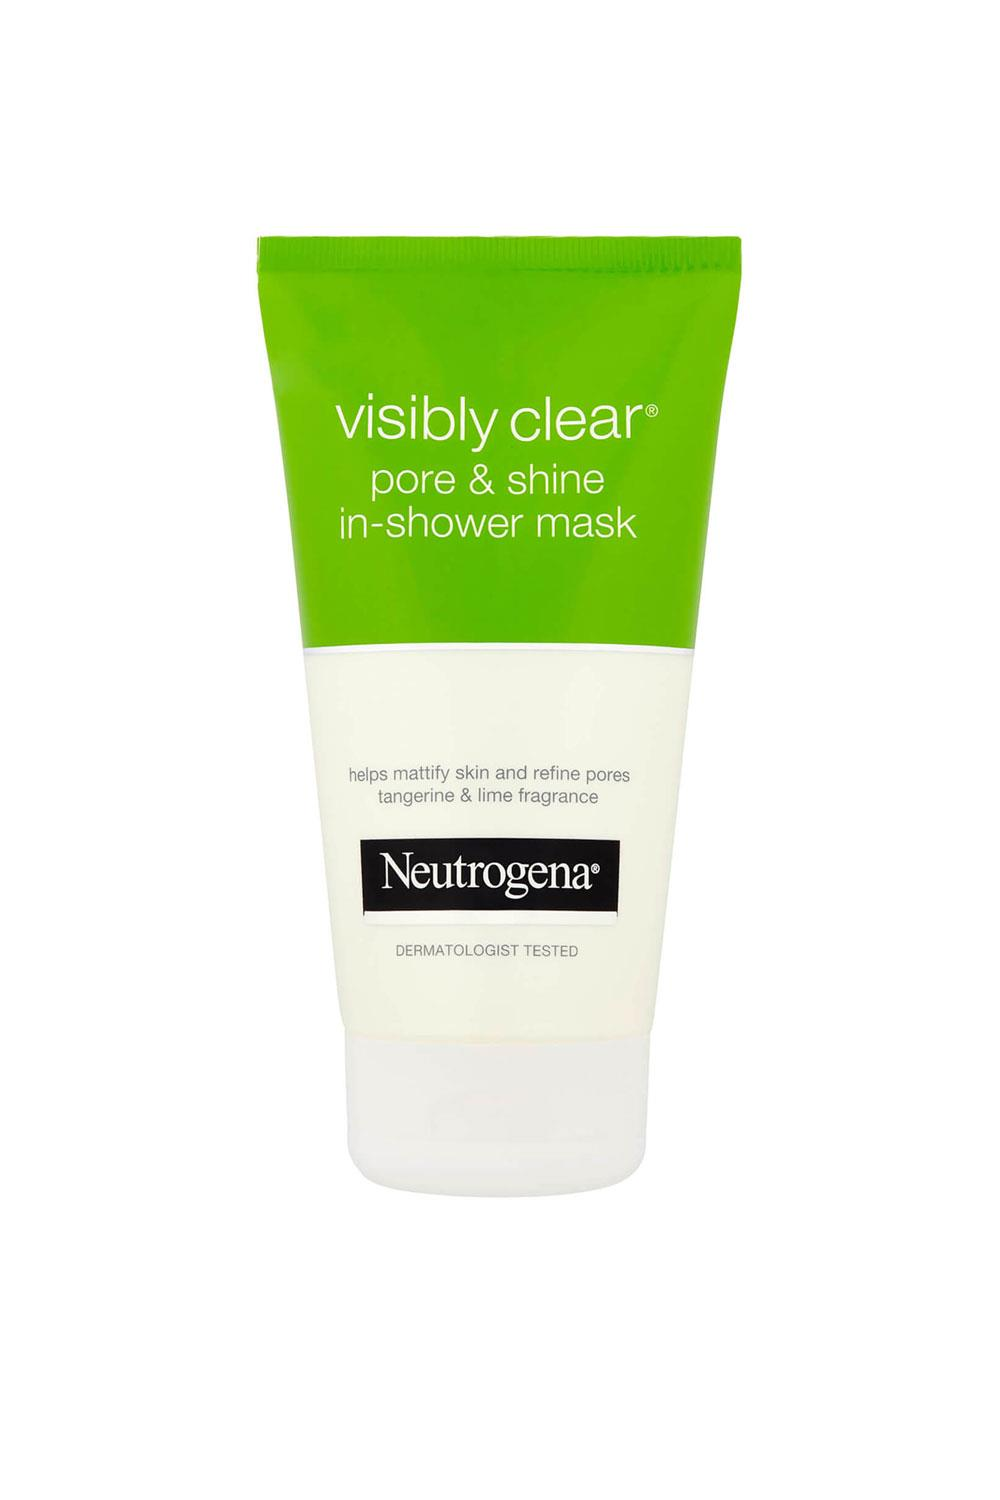 mascarillas para la cara Mascarilla Pore and Shine Visibly Clear de Neutrogena, 5,95€